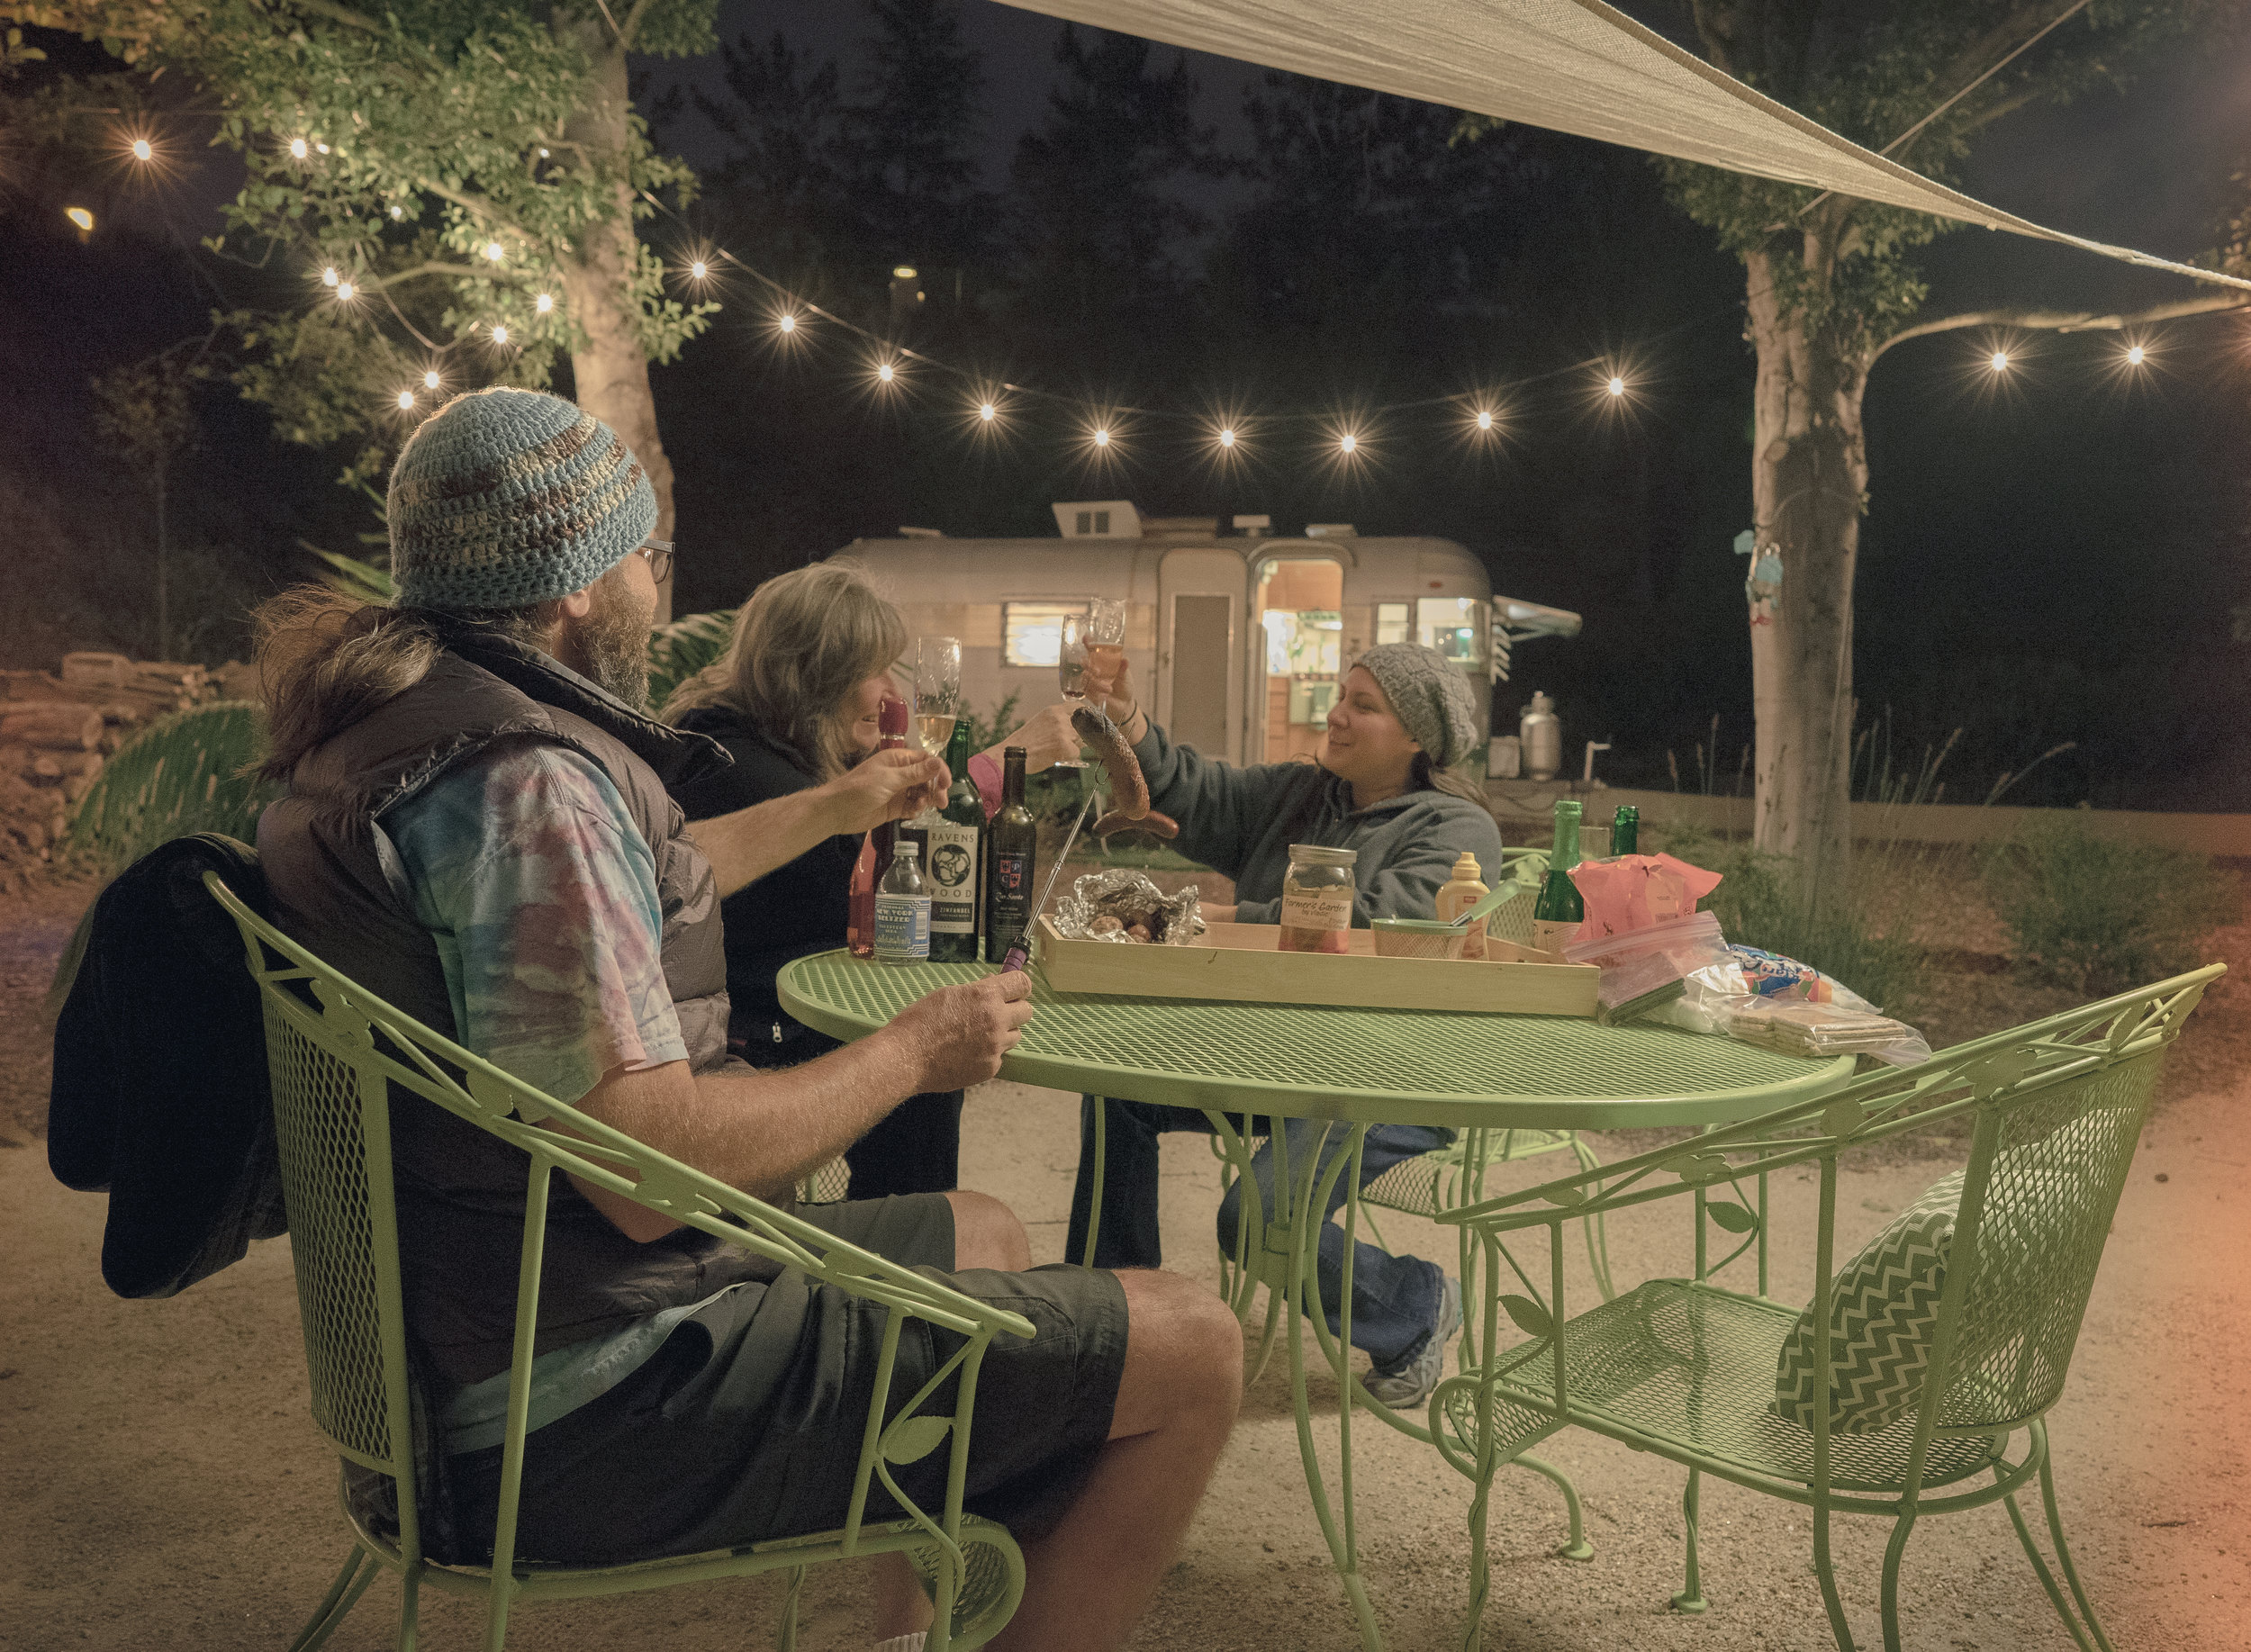 Discover The Magic Of Camping Under The Stars In A Vintage Trailer!